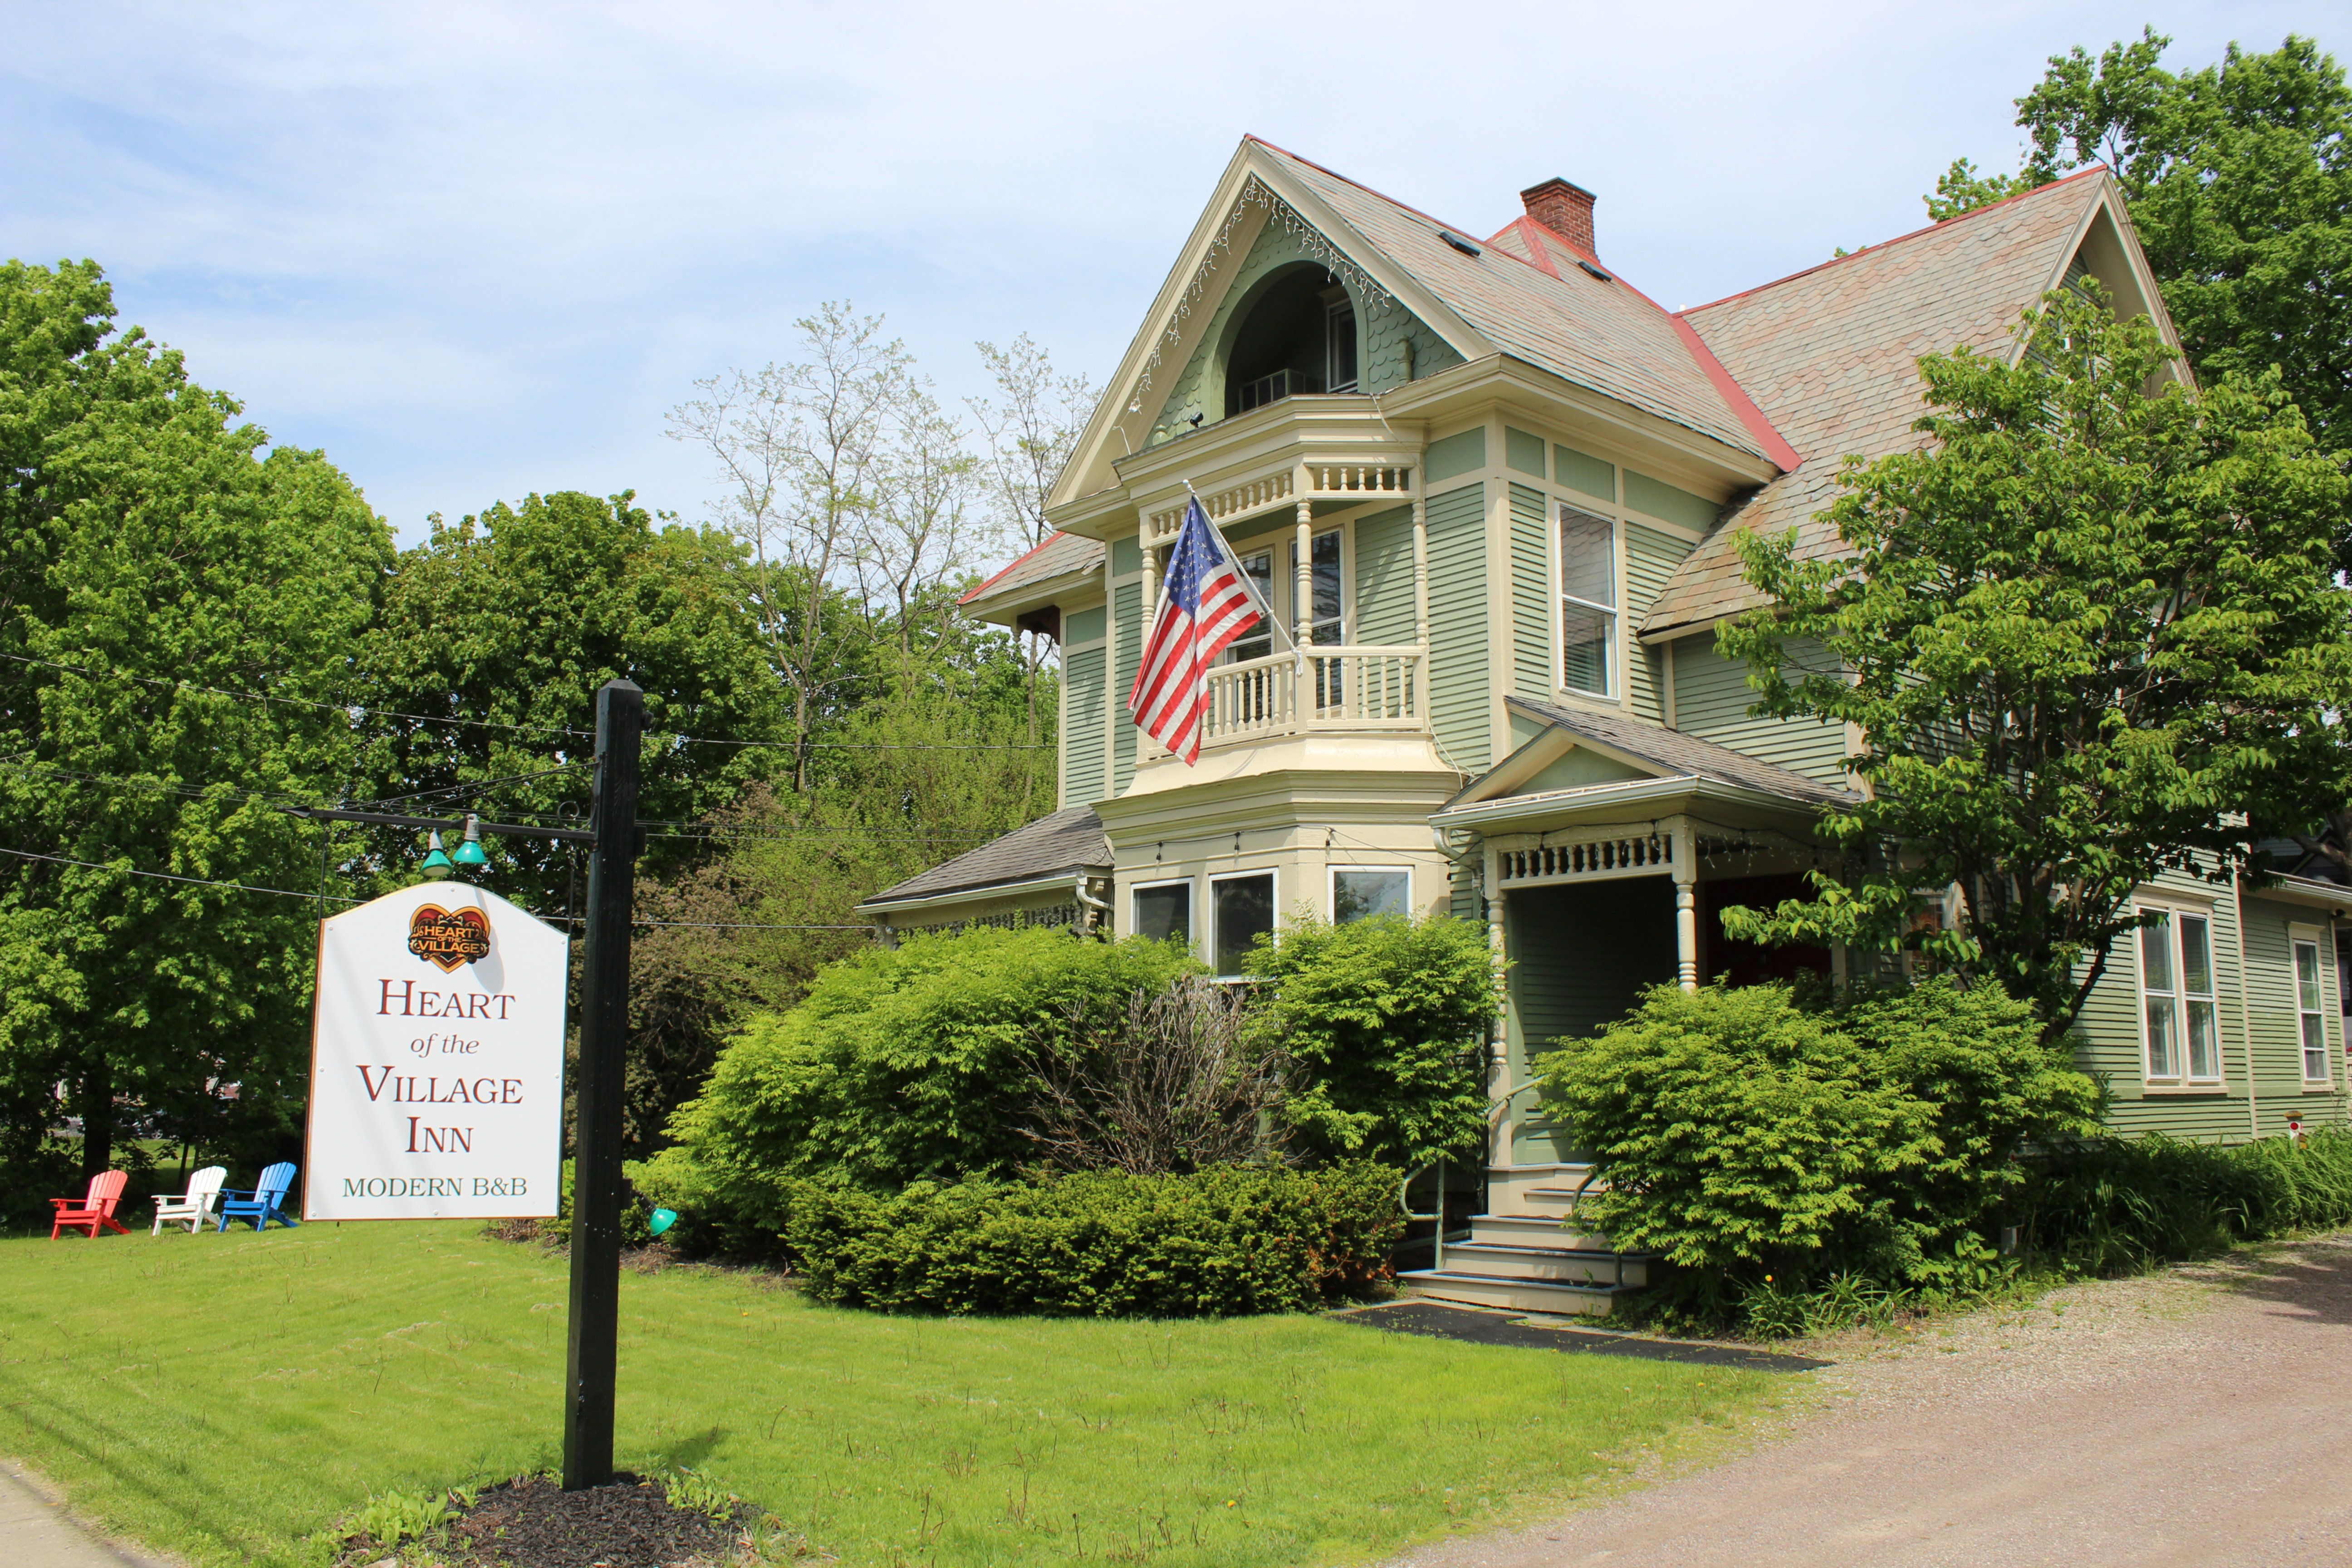 A large lawn in front of a house at Heart of the Village Inn, Modern Vermont Bed & Breakfast.